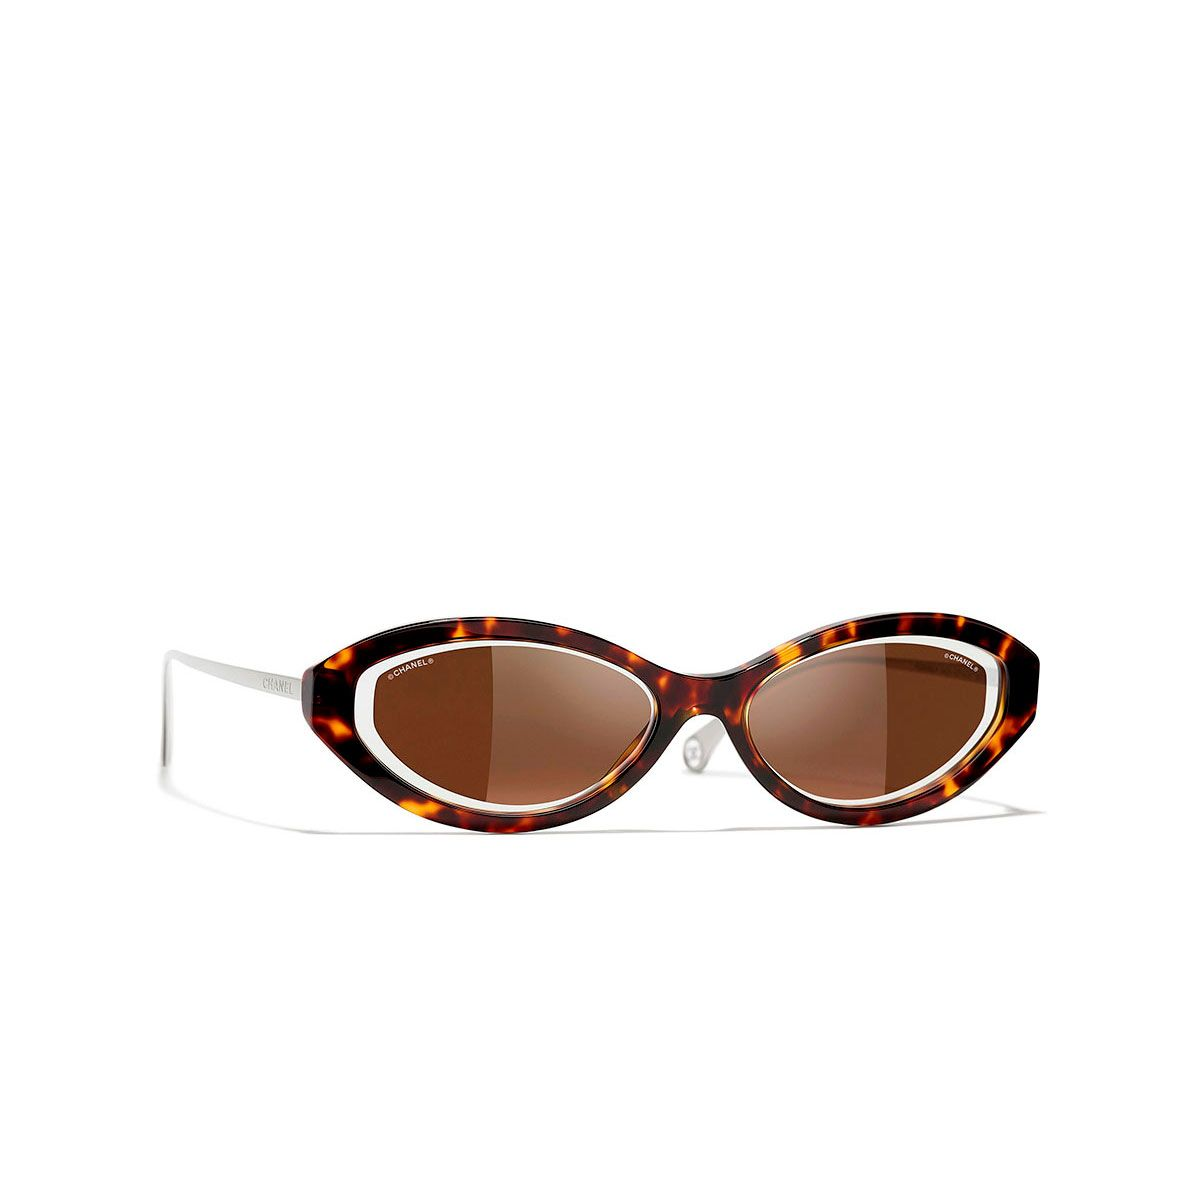 Oval Sunglasses 300 Sunglasses